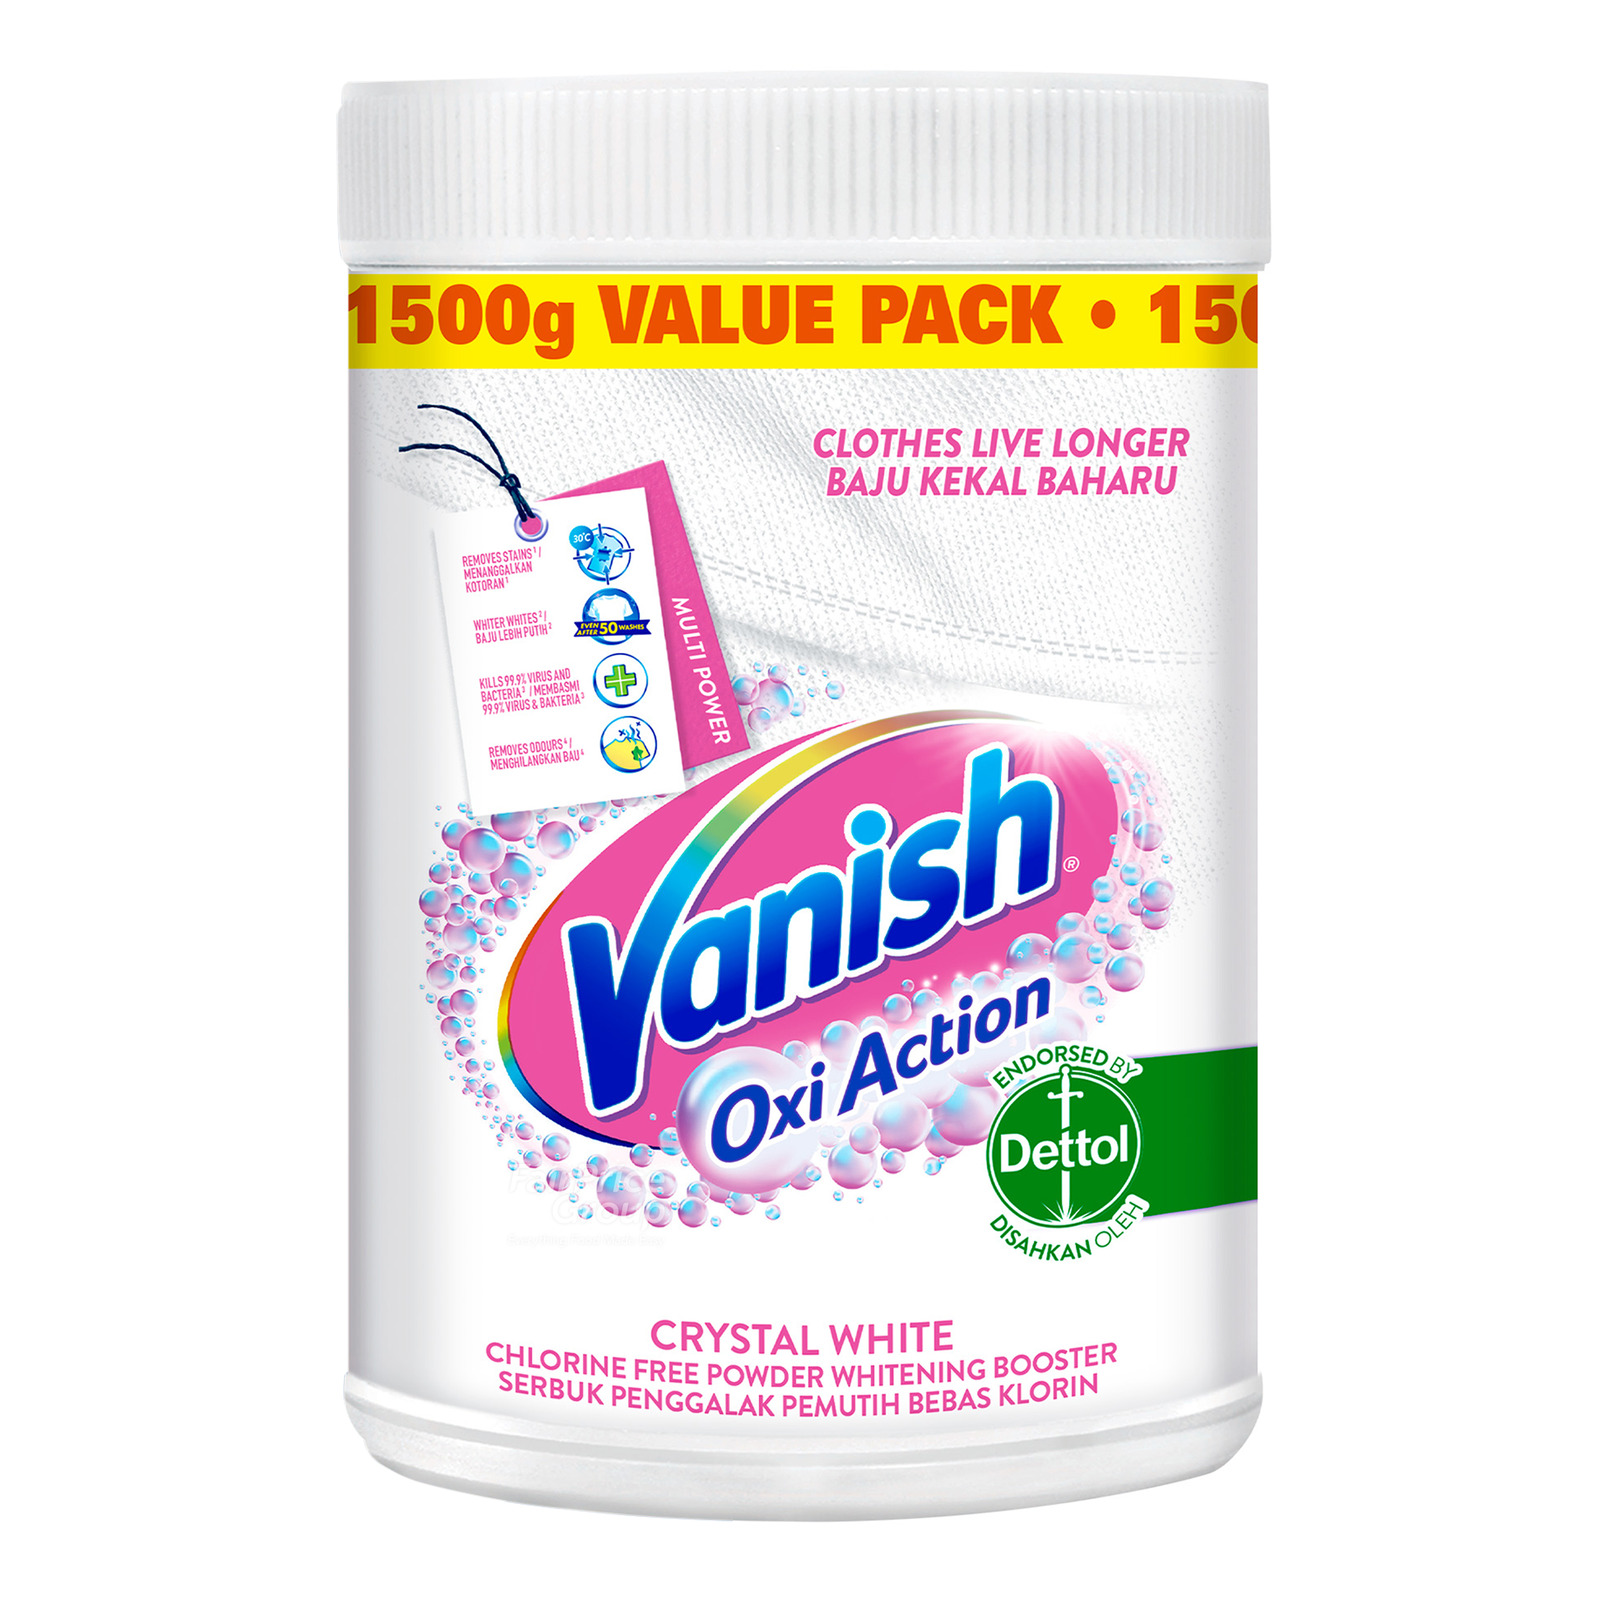 Vanish Powder Fabric Stain Remover - Oxi Action (Crystal White)